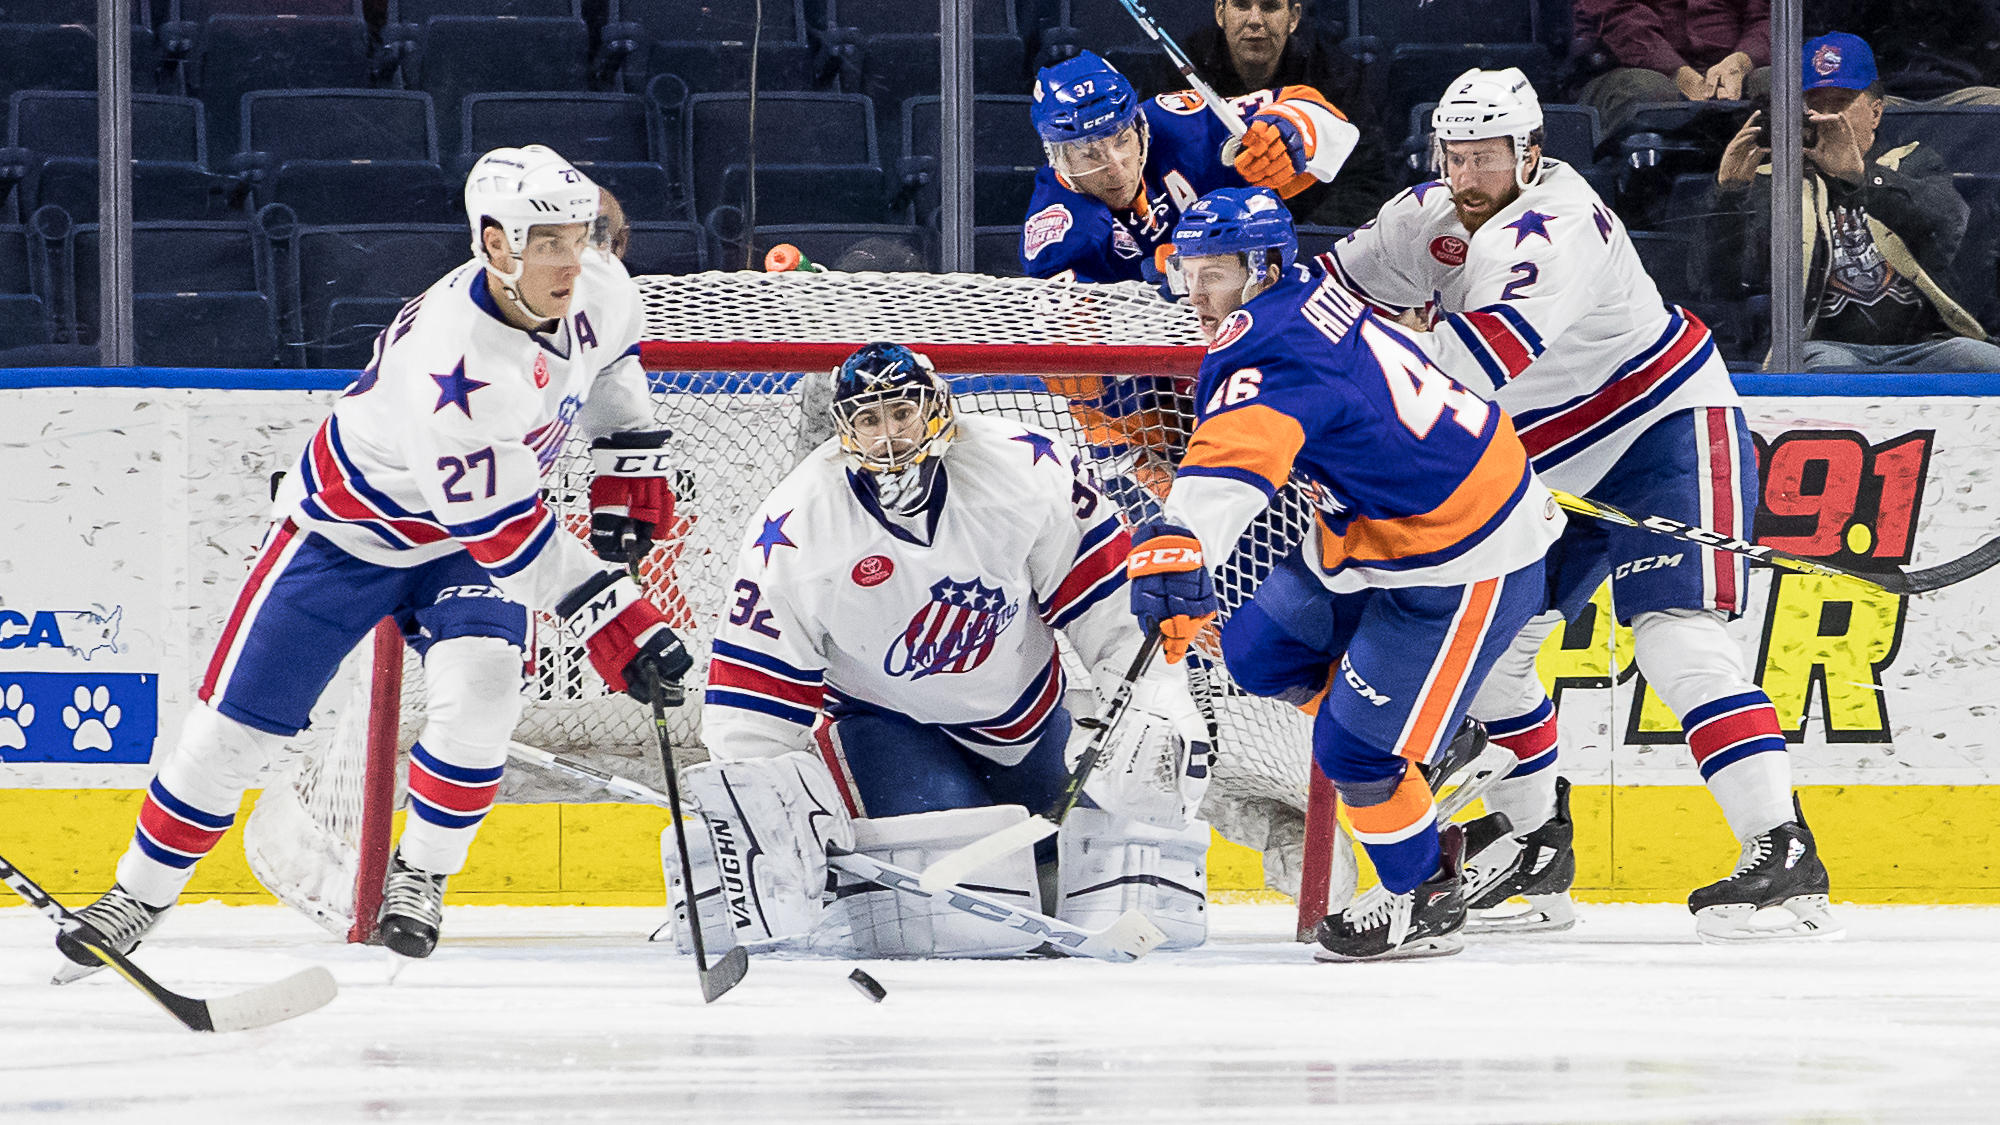 Amerks Lose after Giving Up a Four Goal Lead